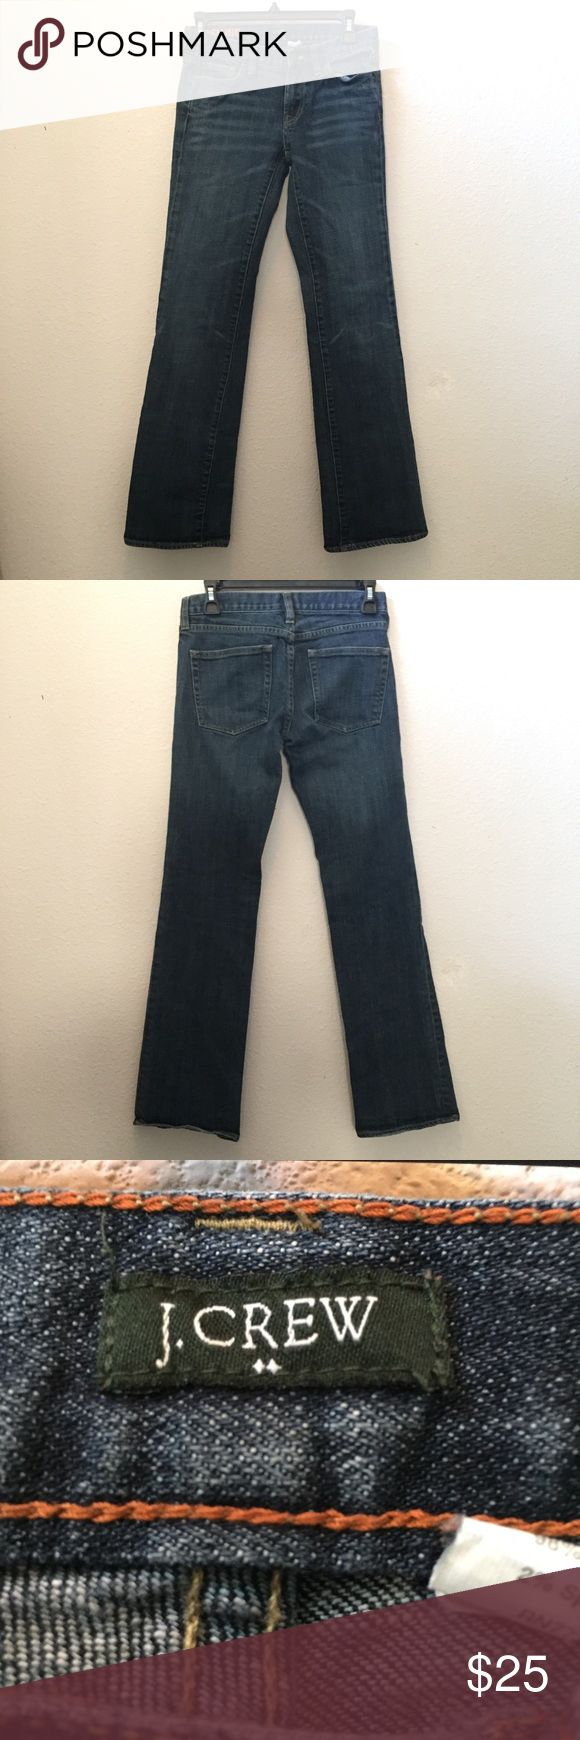 J Crew Jeans size 27 Gently used women's J. Crew jeans in size 27 hipslung. Medium to dark wash, bootcut/ straight leg. J Crew Jeans Straight Leg